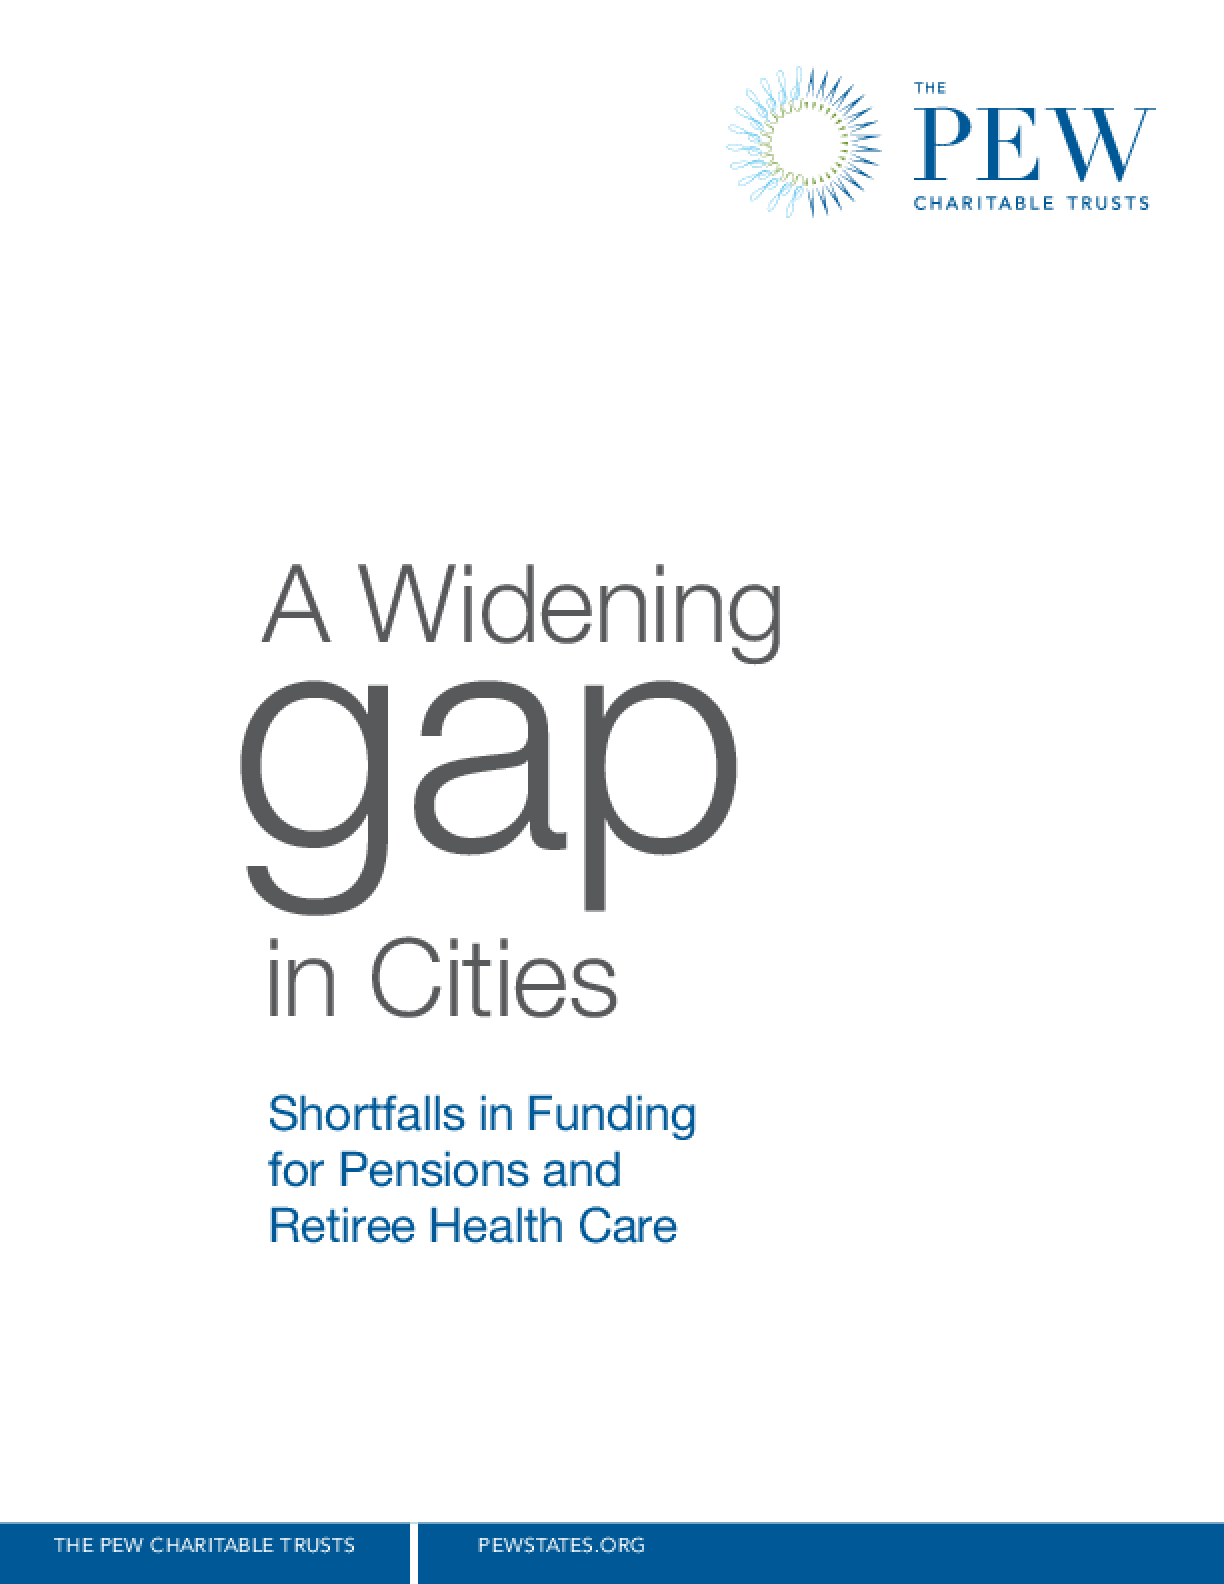 A Widening Gap in Cities: Shortfalls in Funding for Pensions and Retiree Health Care